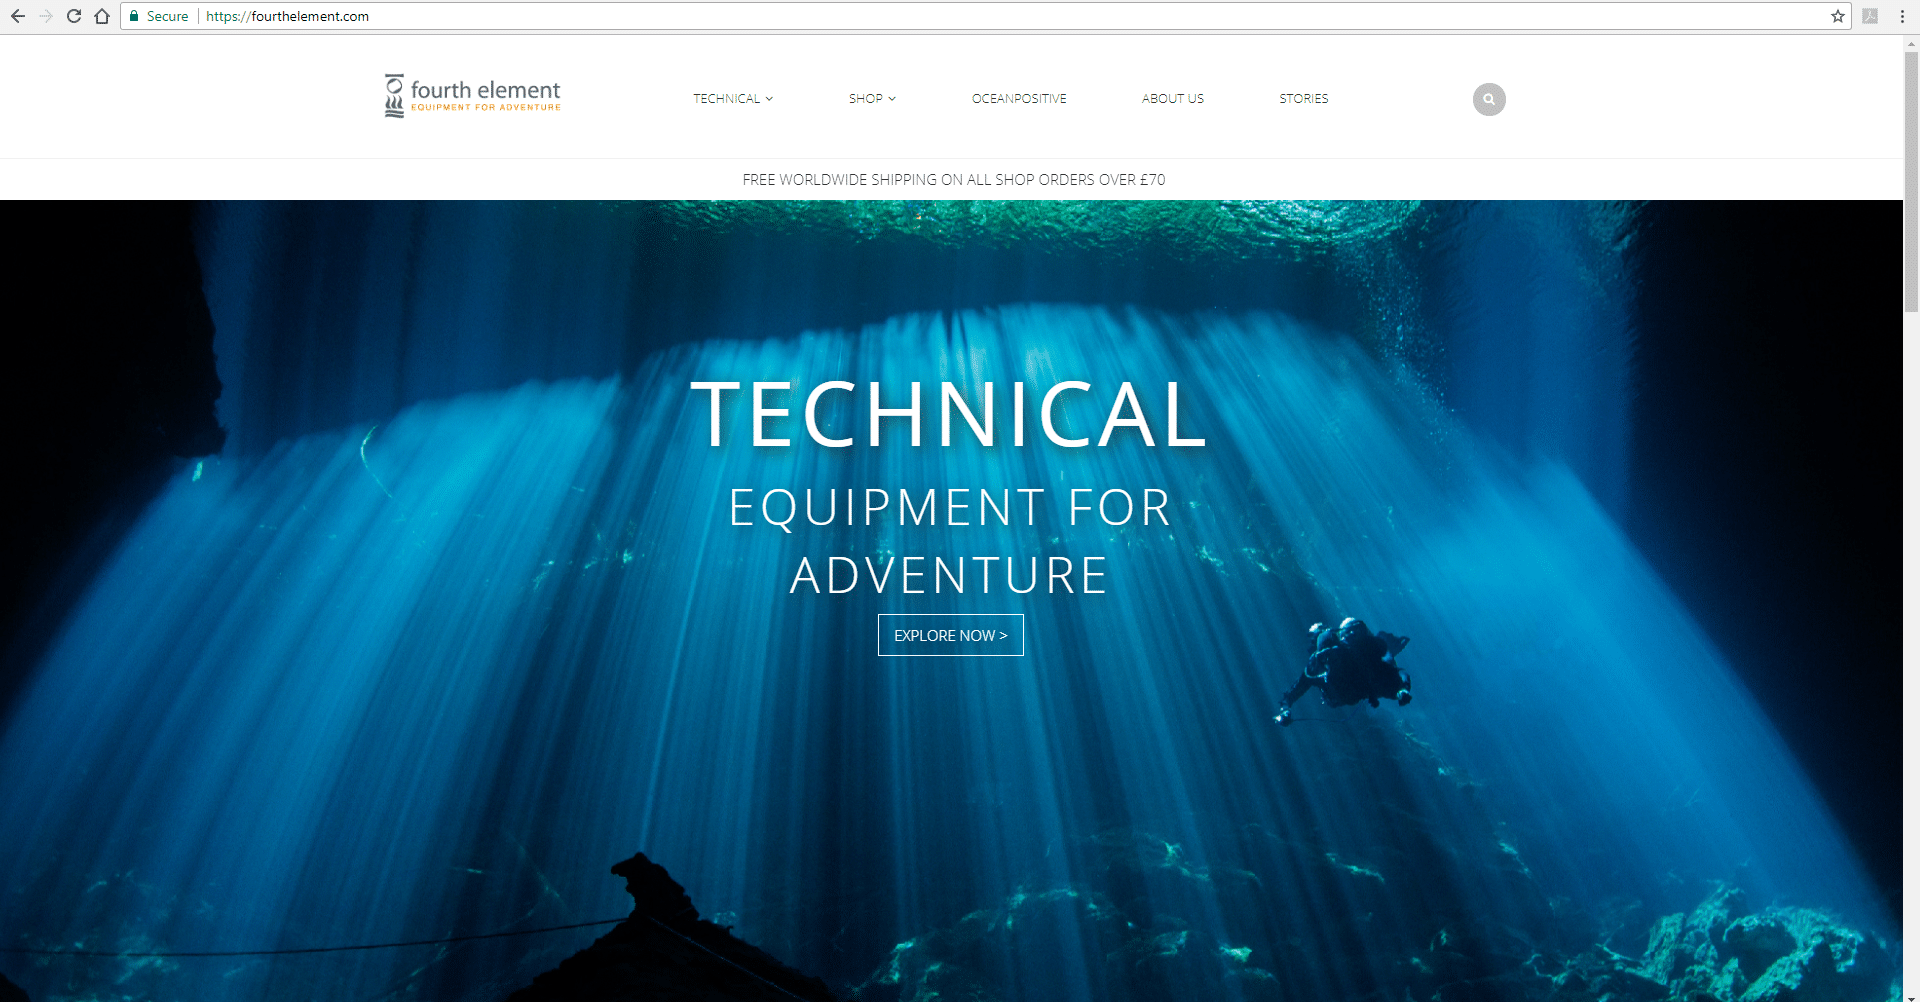 Fourth Element's Website Has A New Look